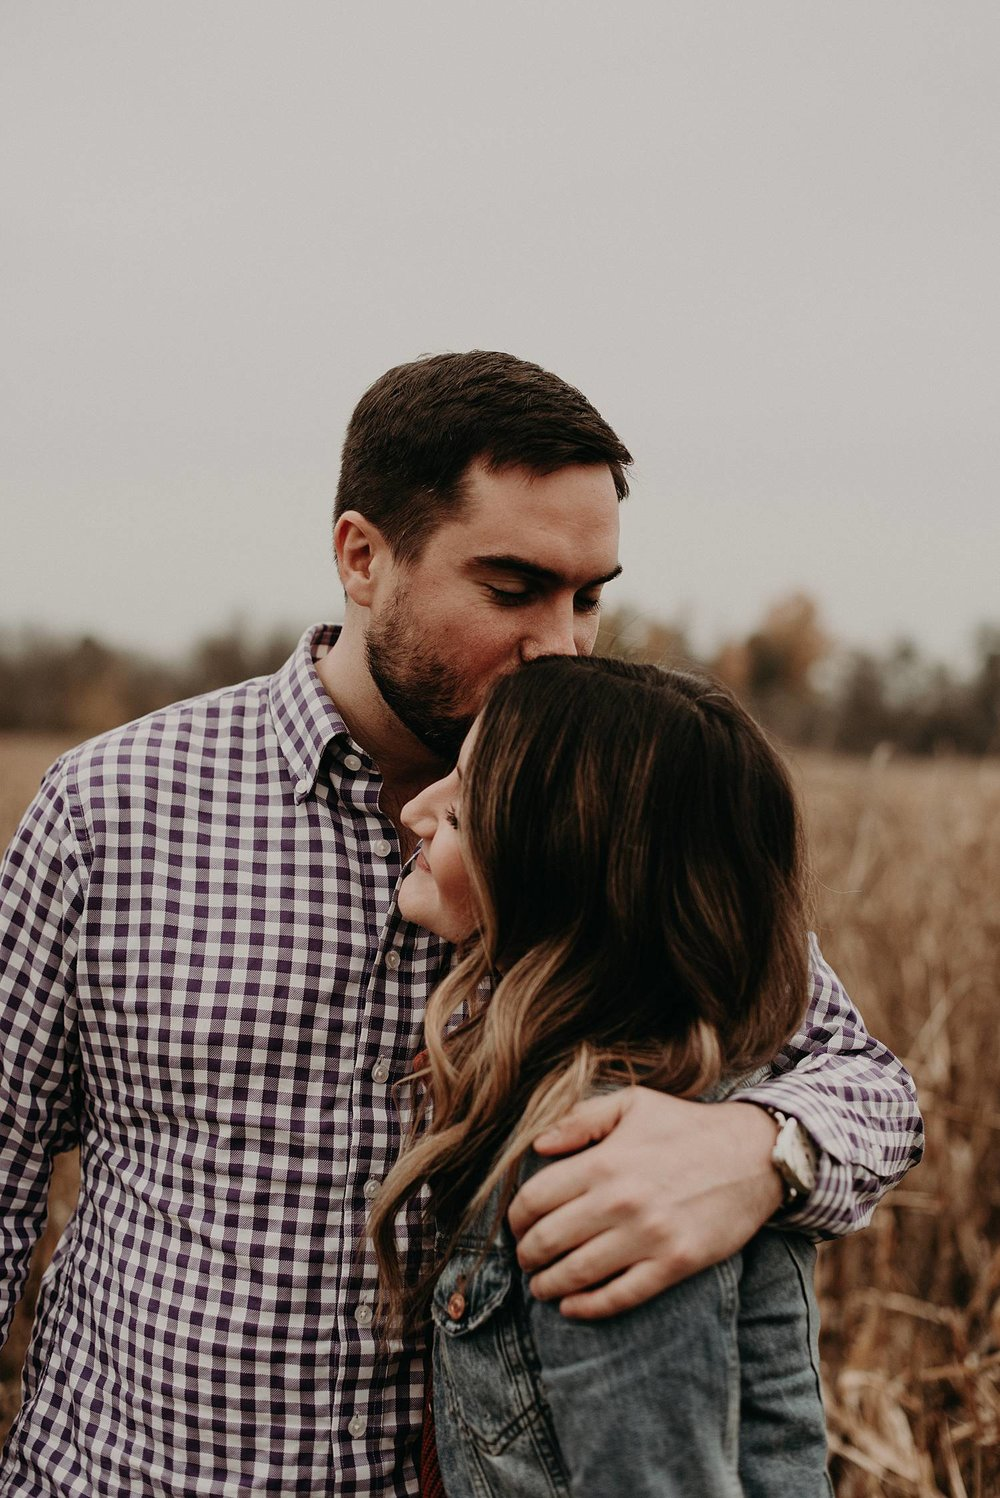 vancouver_lake_engagement_session_jake_and_jessica_1015.jpg